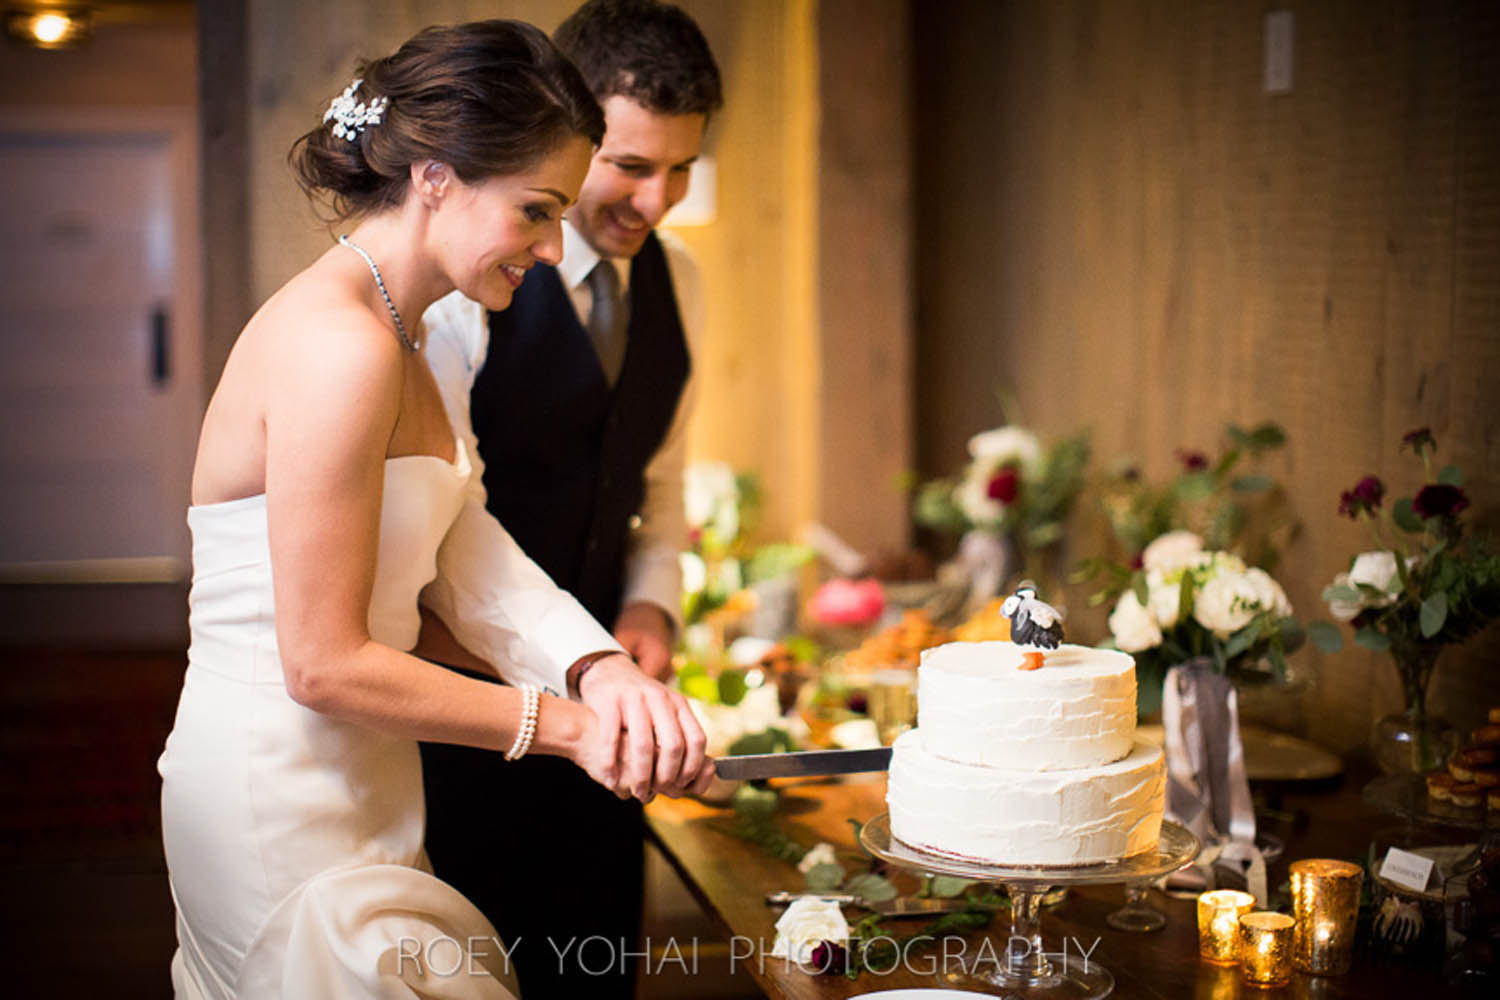 cake-cutting-stacie-shea-events.jpg